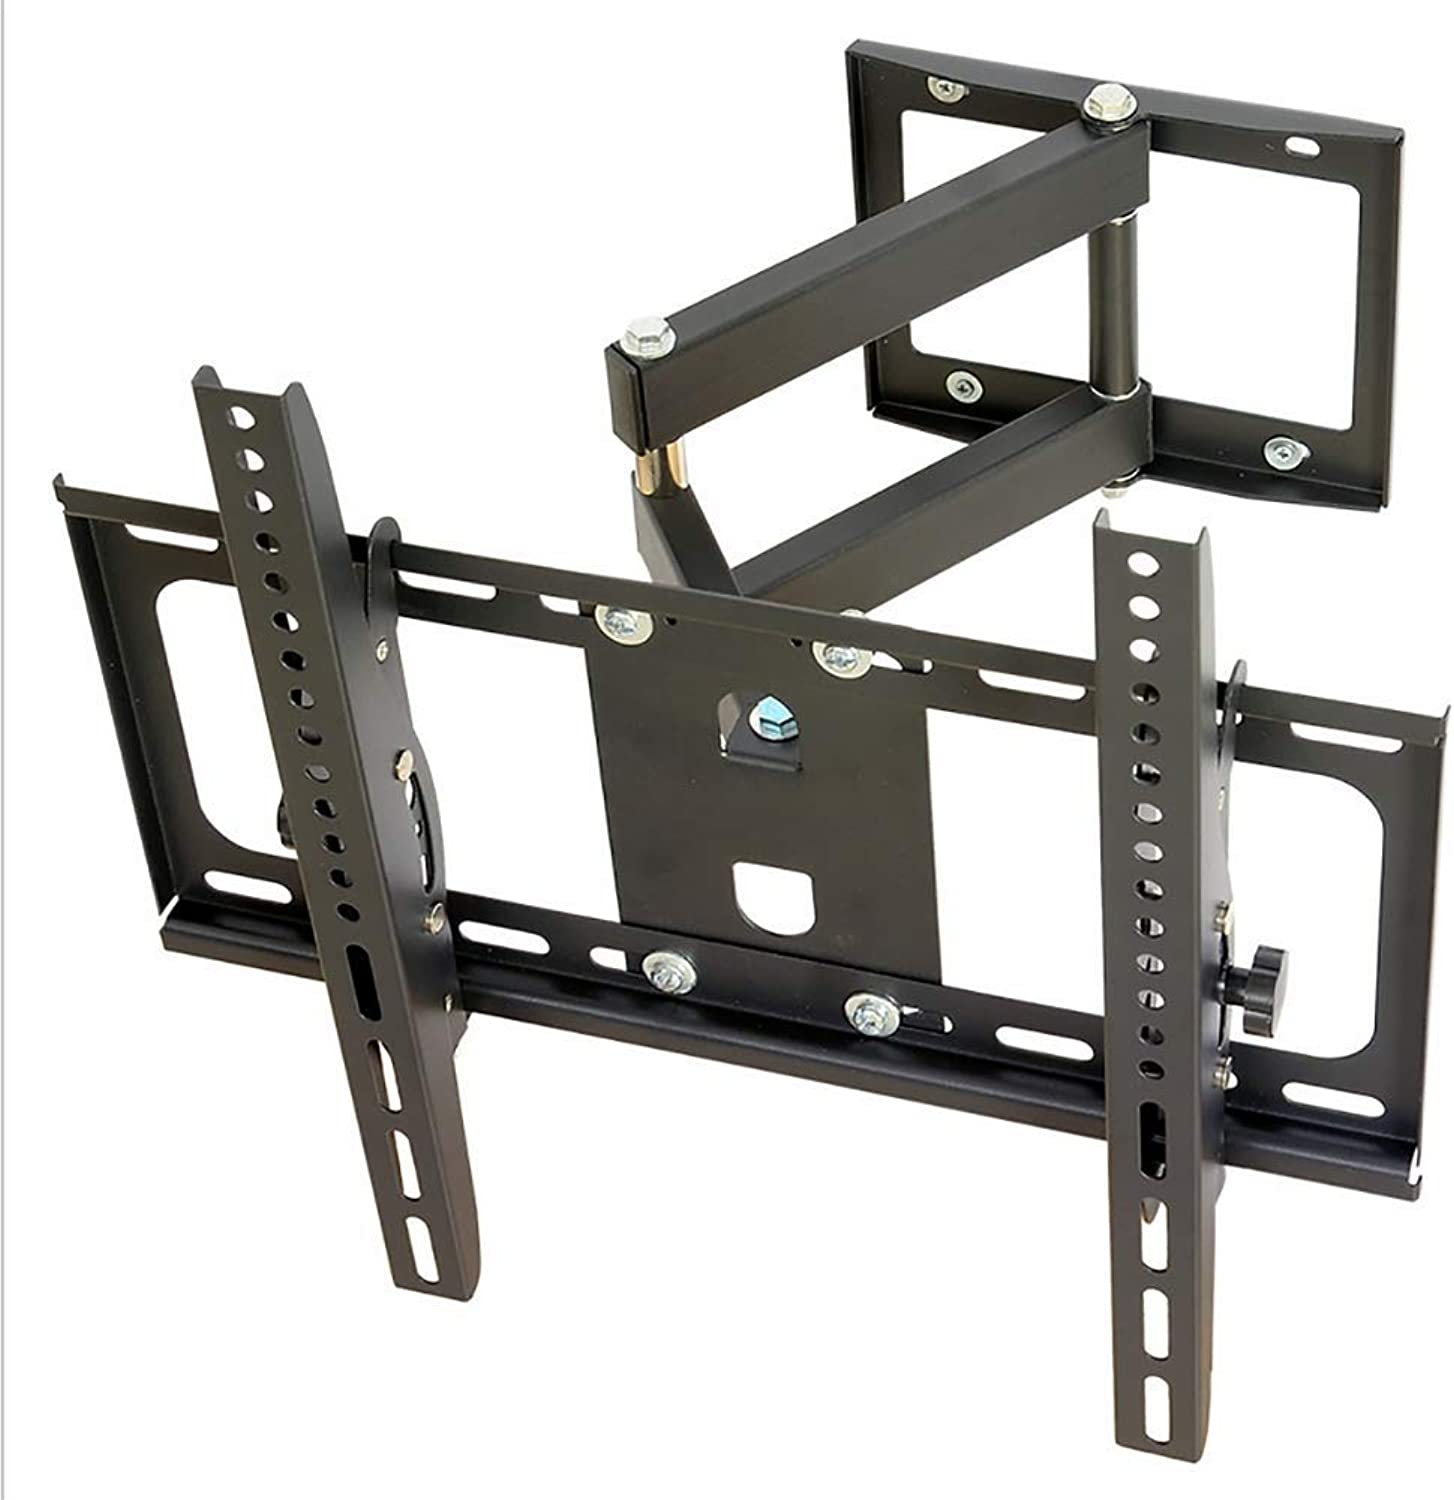 Adjustable Angle redation TV Wall Mount Bracket, Up to VESA 400 x 400 mm and 45KG for 26 to 55 Inch TV Flat Screens and Monitors